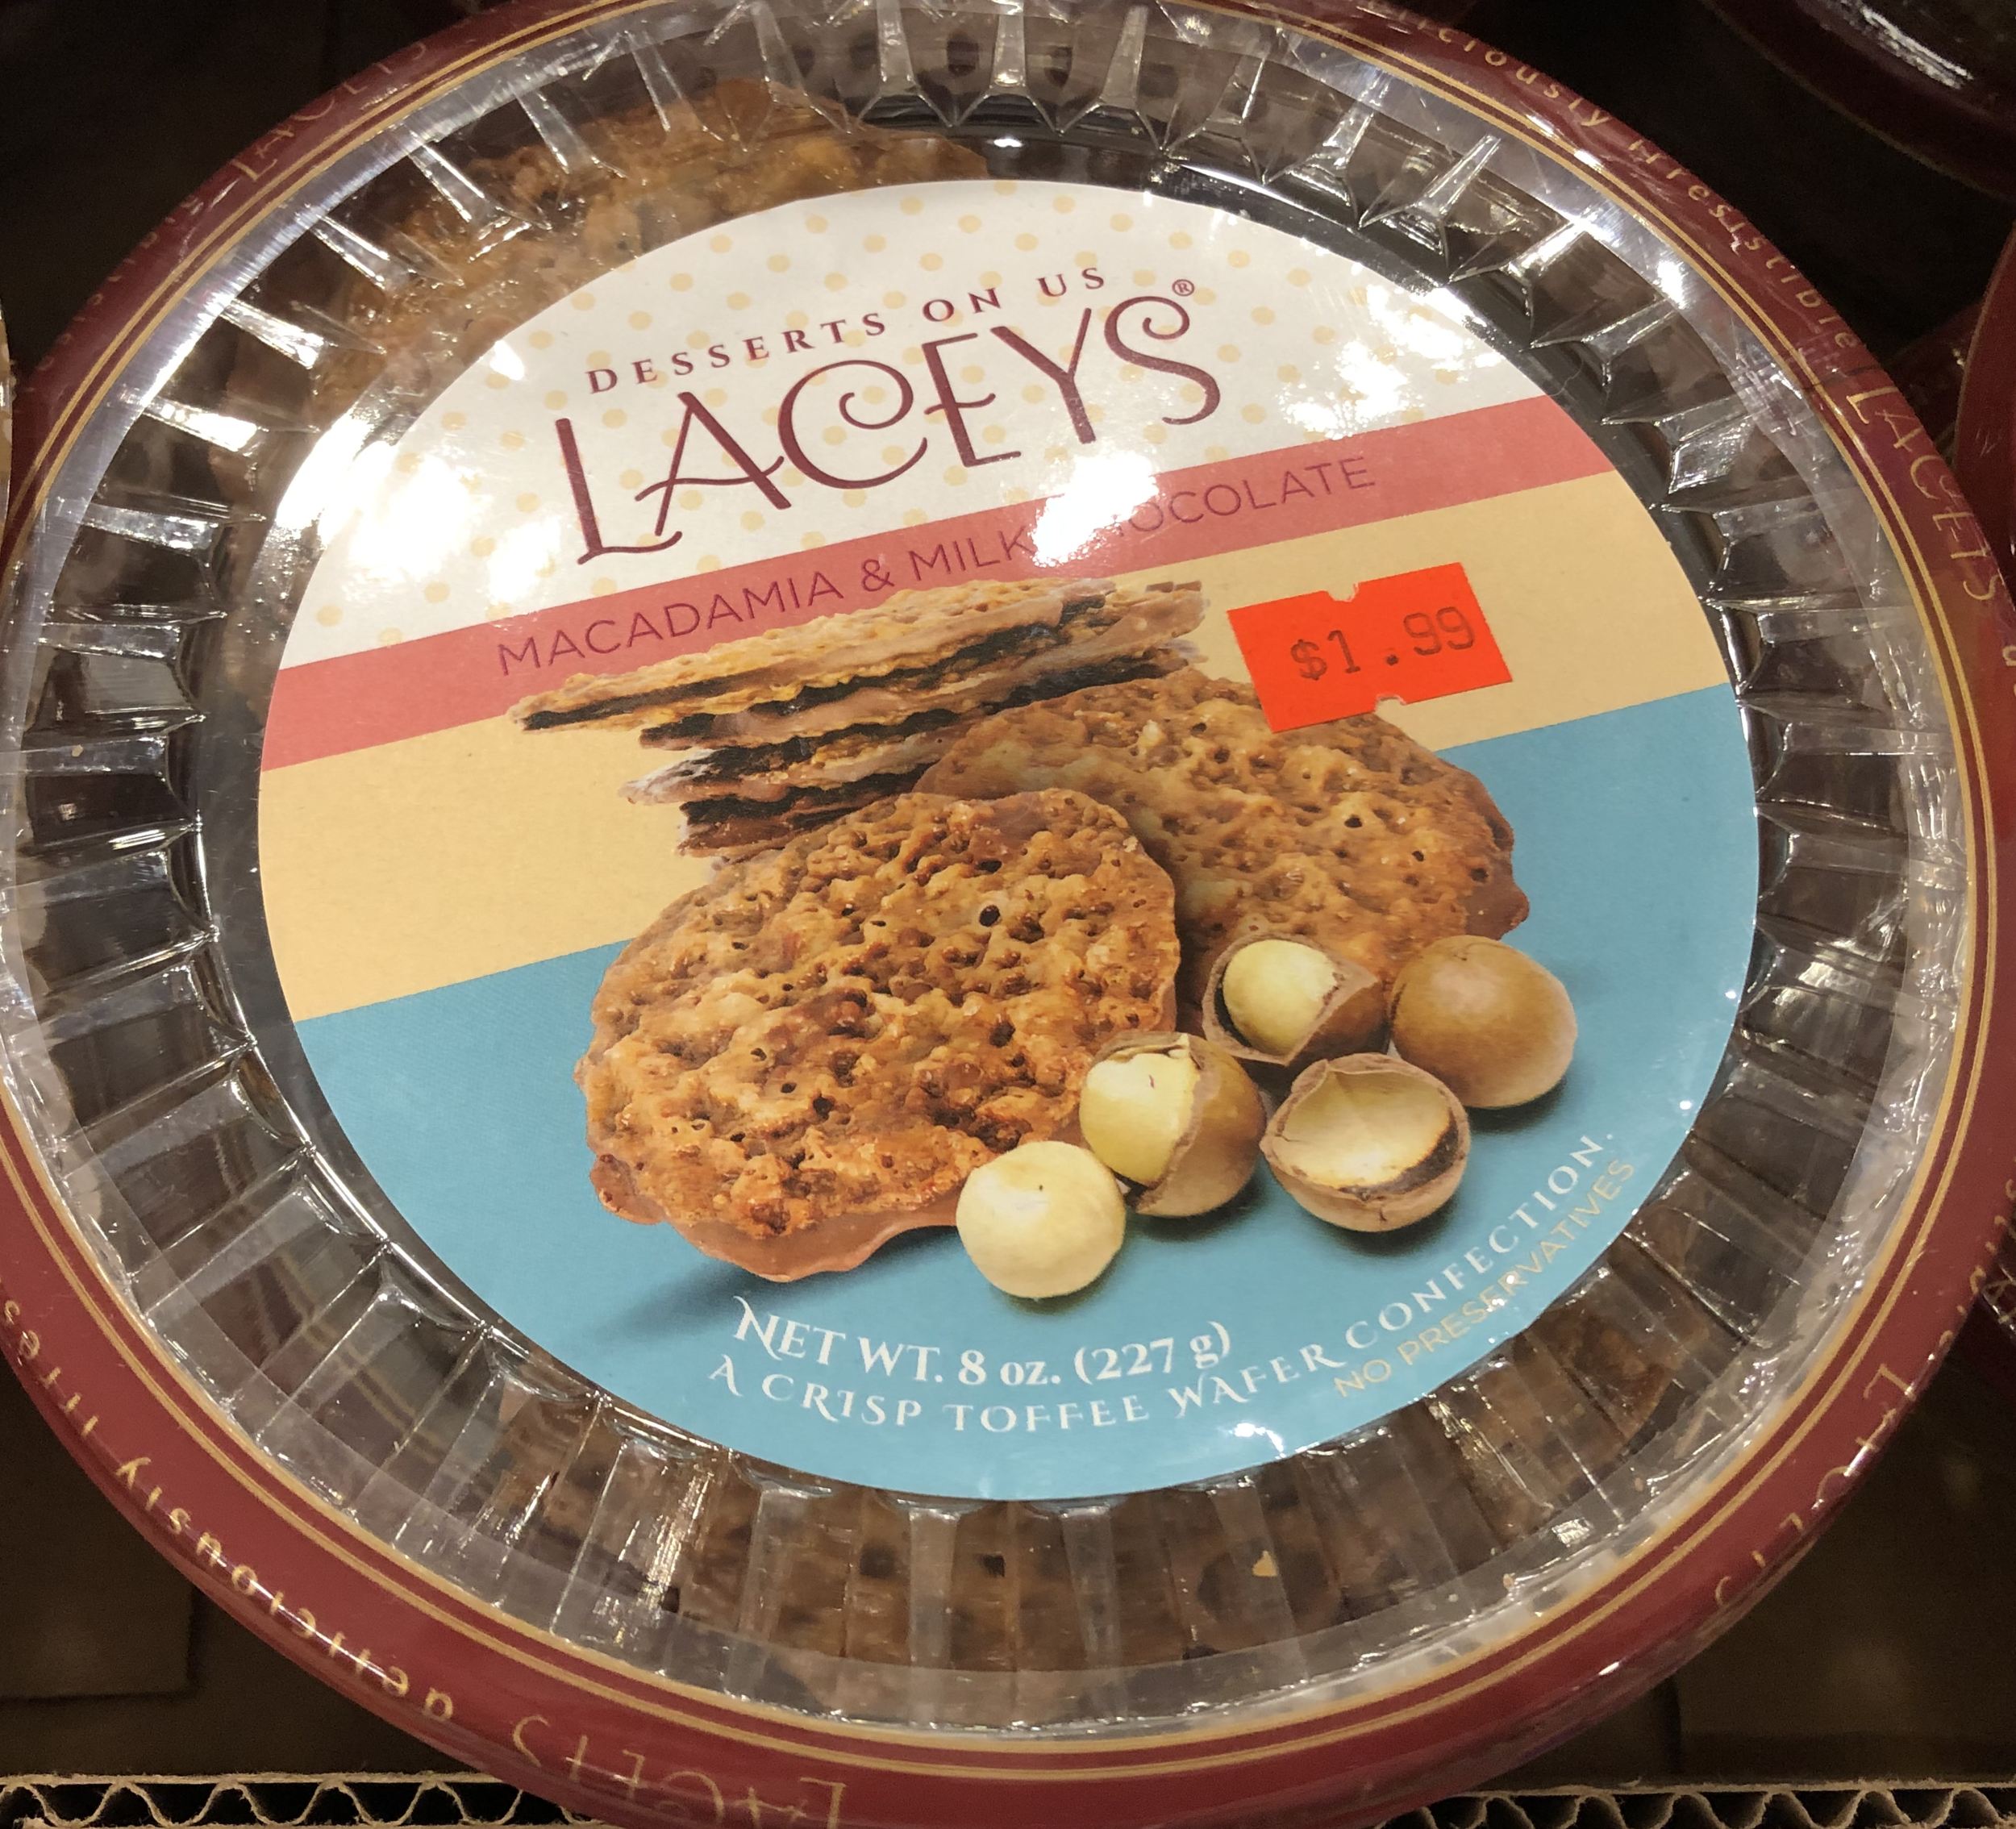 Lacey's Macadamia & Milk Chocolate Toffee Wafer